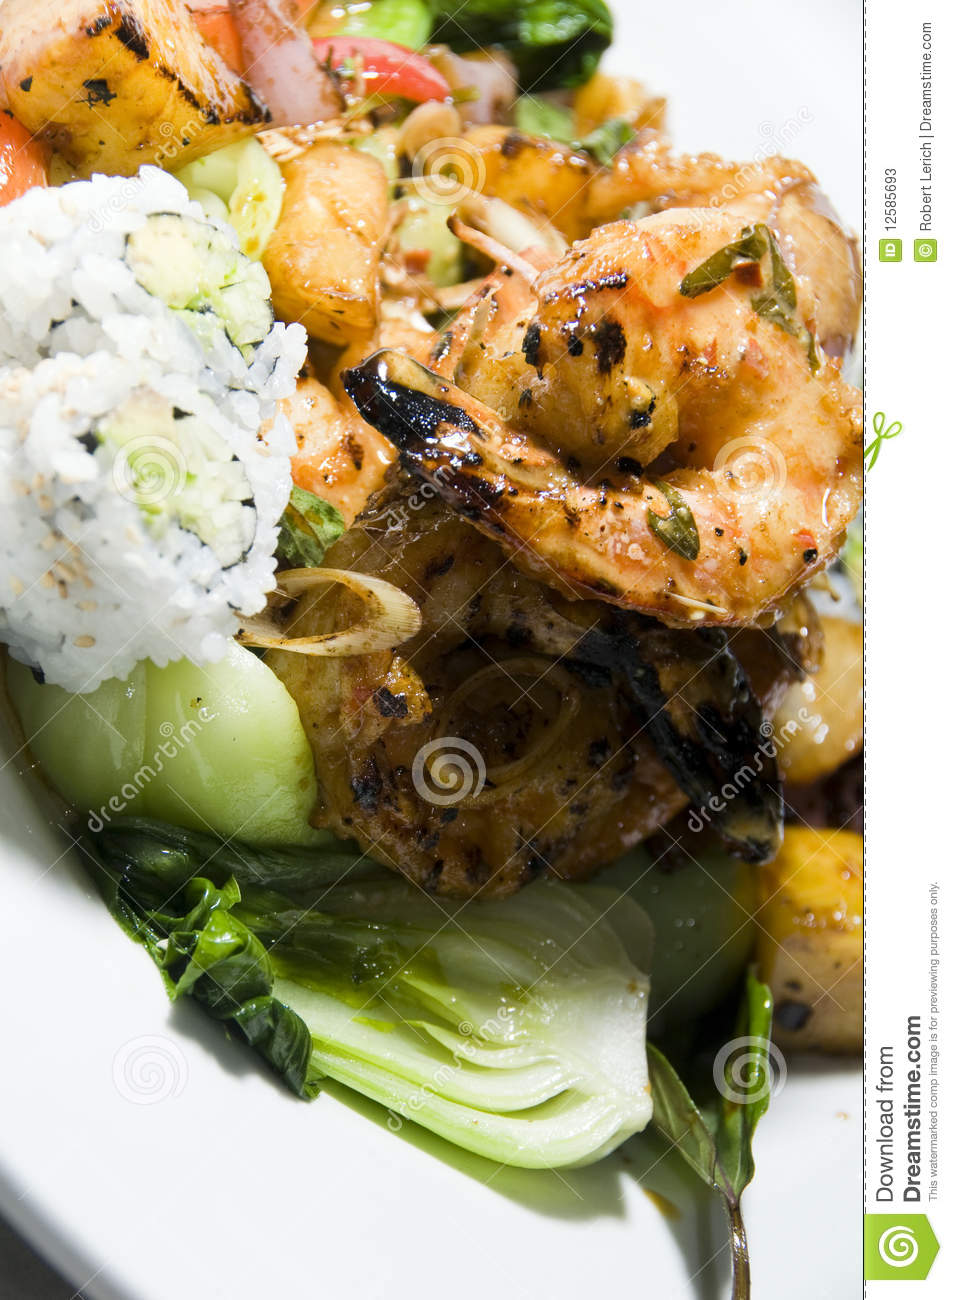 Pan asian fusion thai vietnamese food grilled lemon grass shrimp with ...